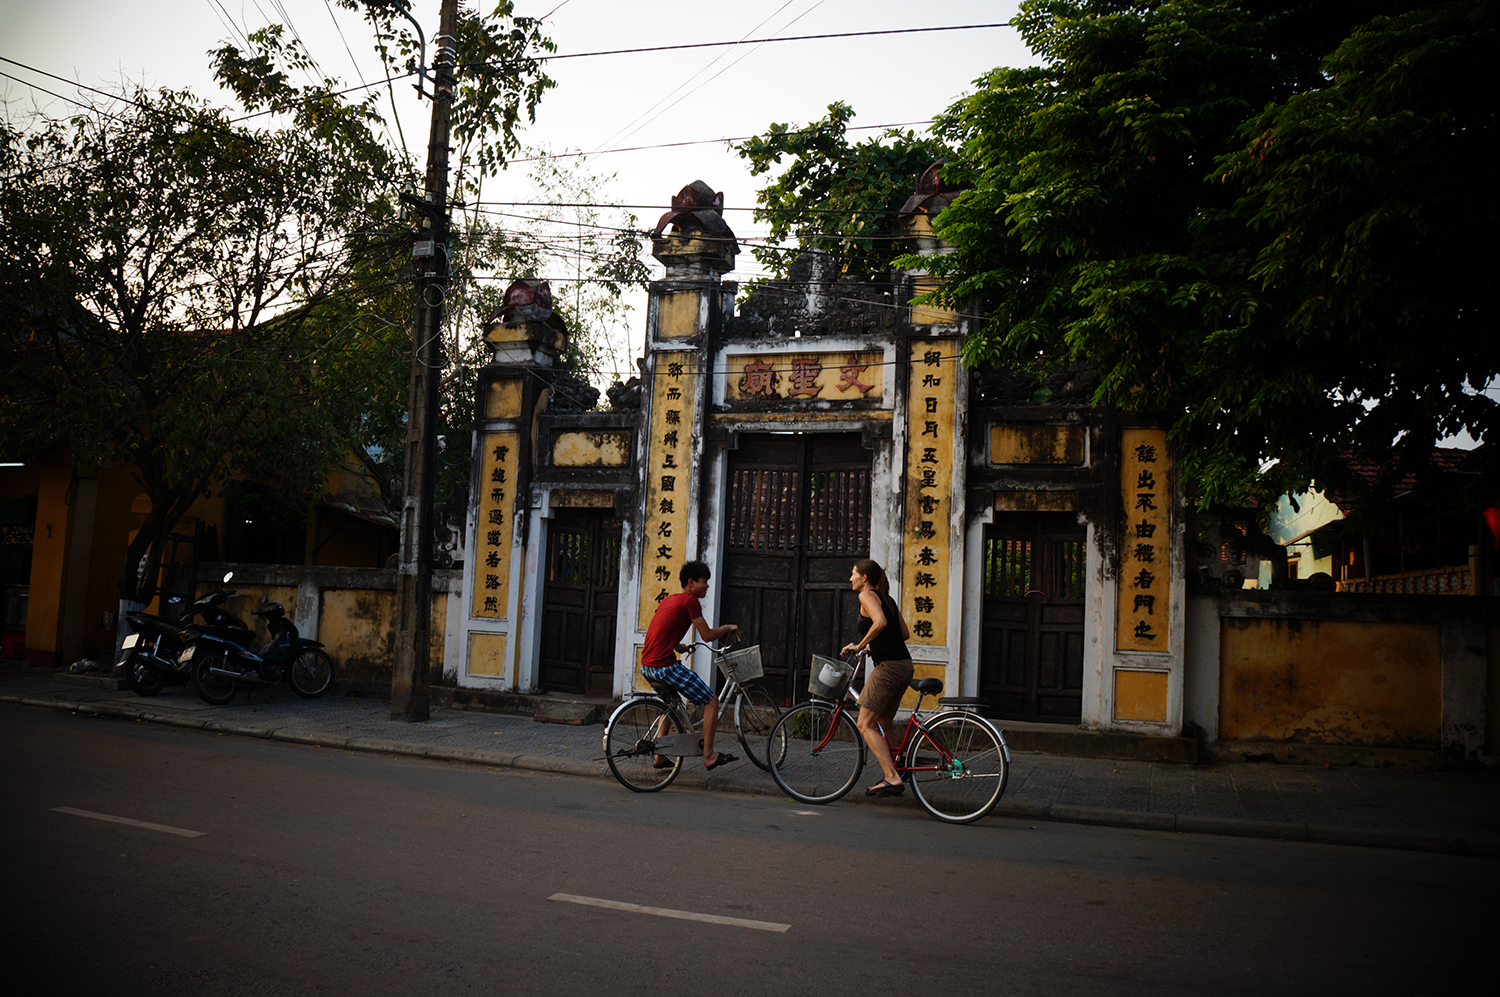 Hoi An temple gates